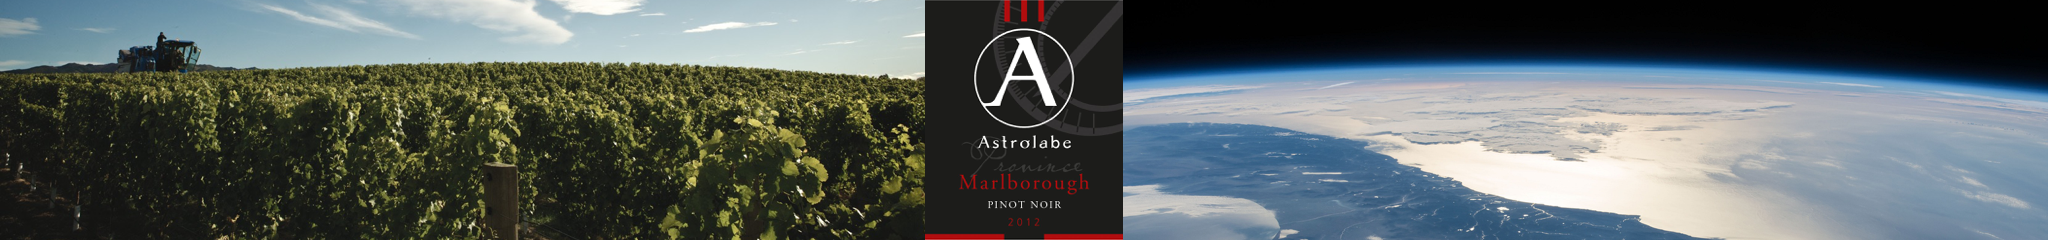 BRAND CONNECT Asia Pacific - Astrolabe Wines of New Zealand